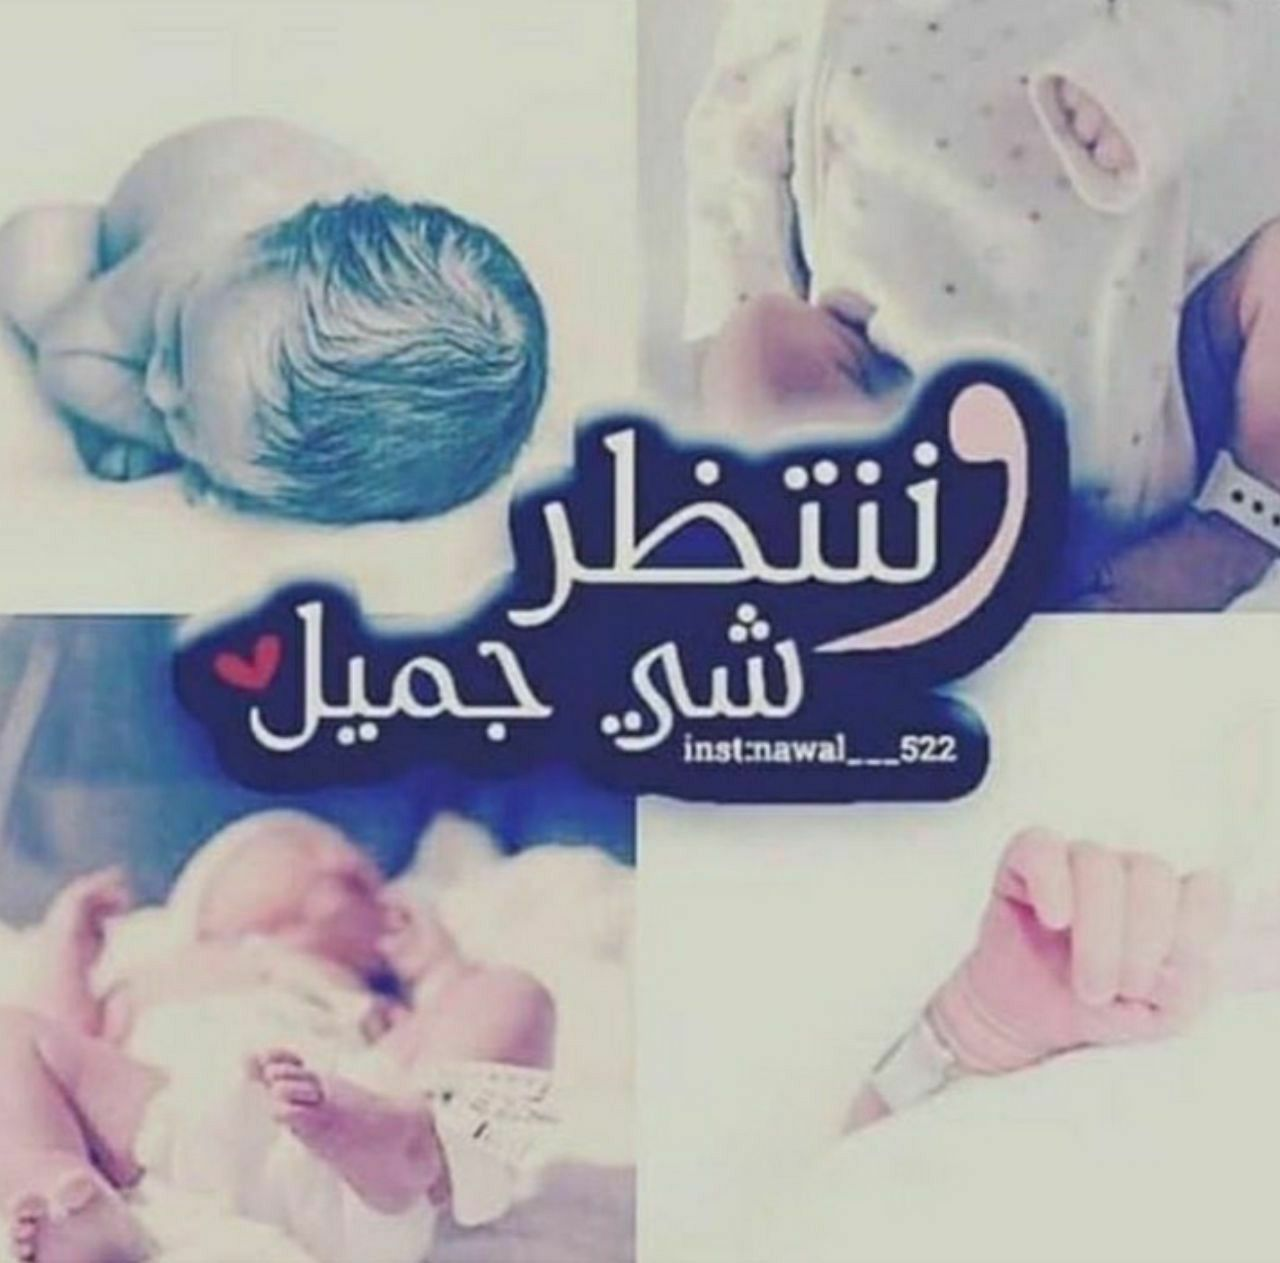 Pin By Baraah On رمزيات In 2021 Arabic Love Quotes New Baby Products Love Quotes